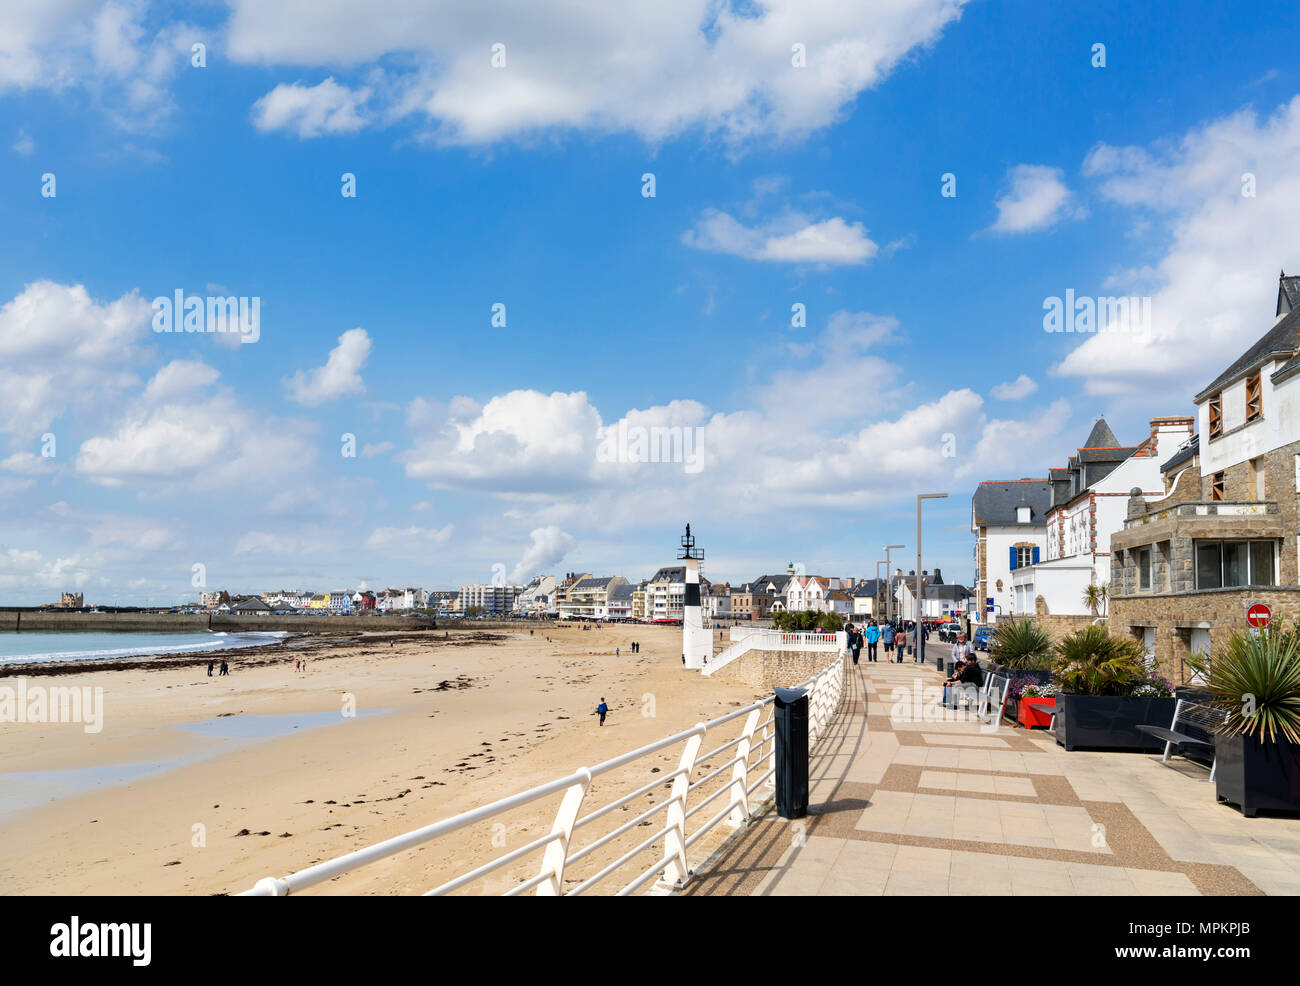 The beach and seafront promenade in Quiberon, Brittany, France - Stock Image